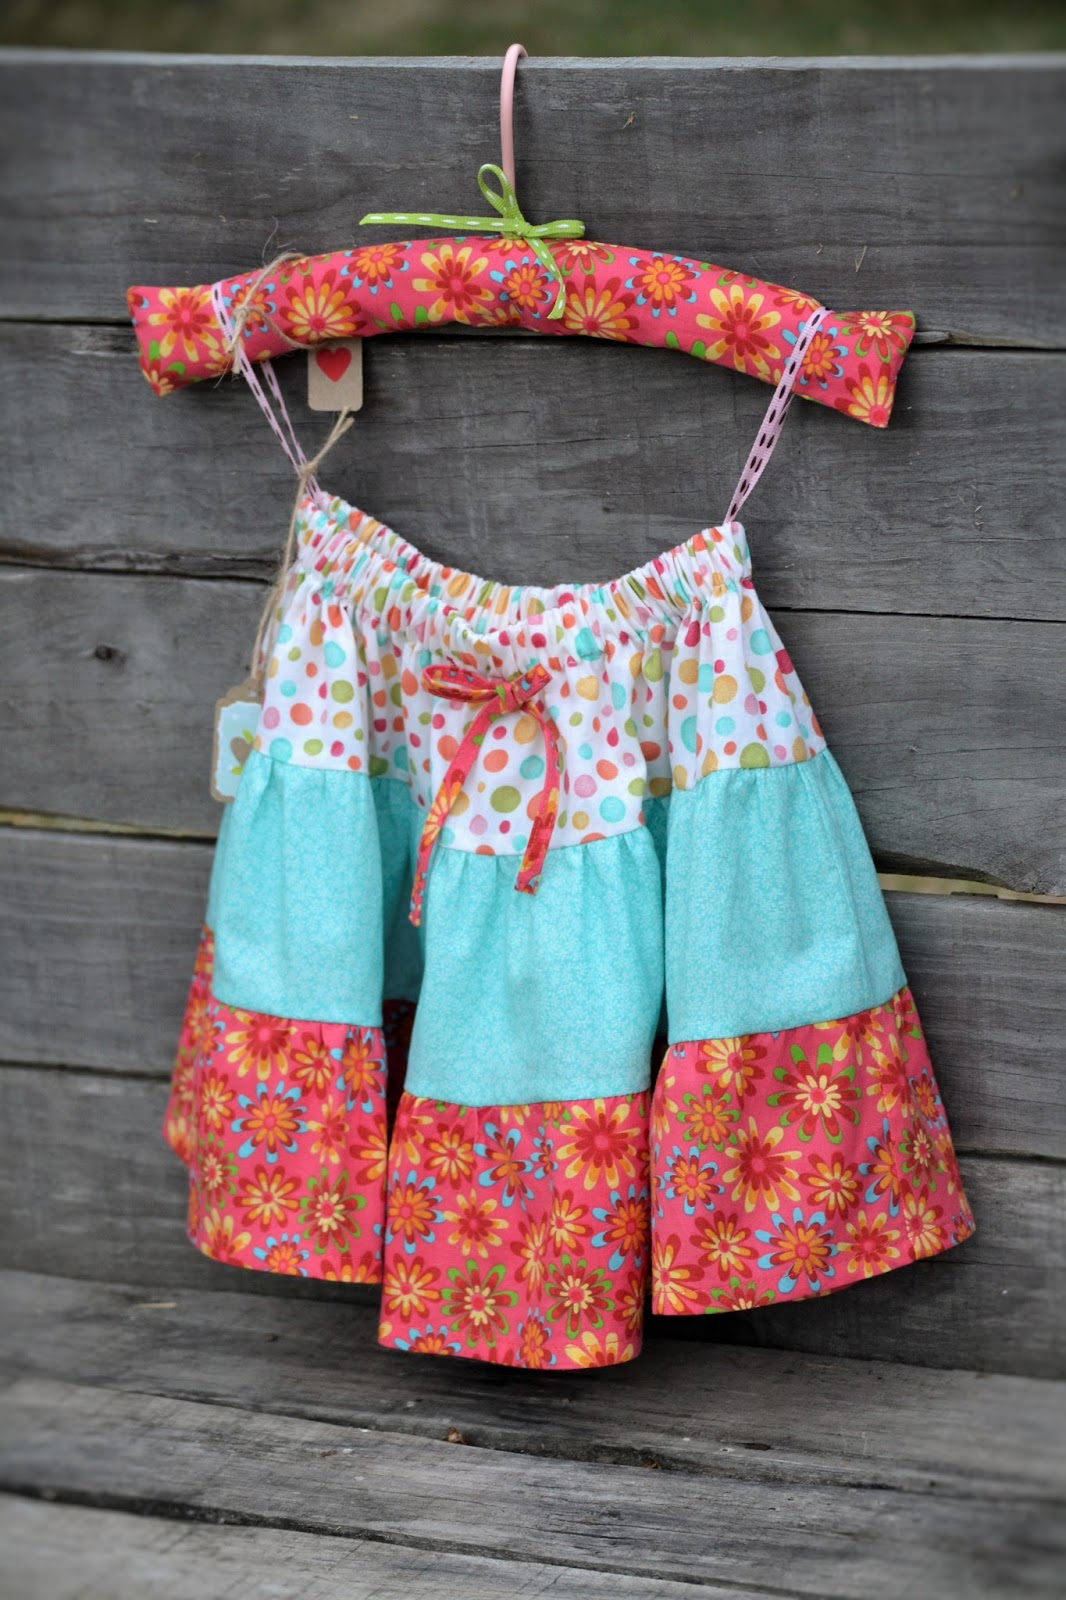 d056a5b729 The Diary of a Country Girl: Little Miss Skirts...